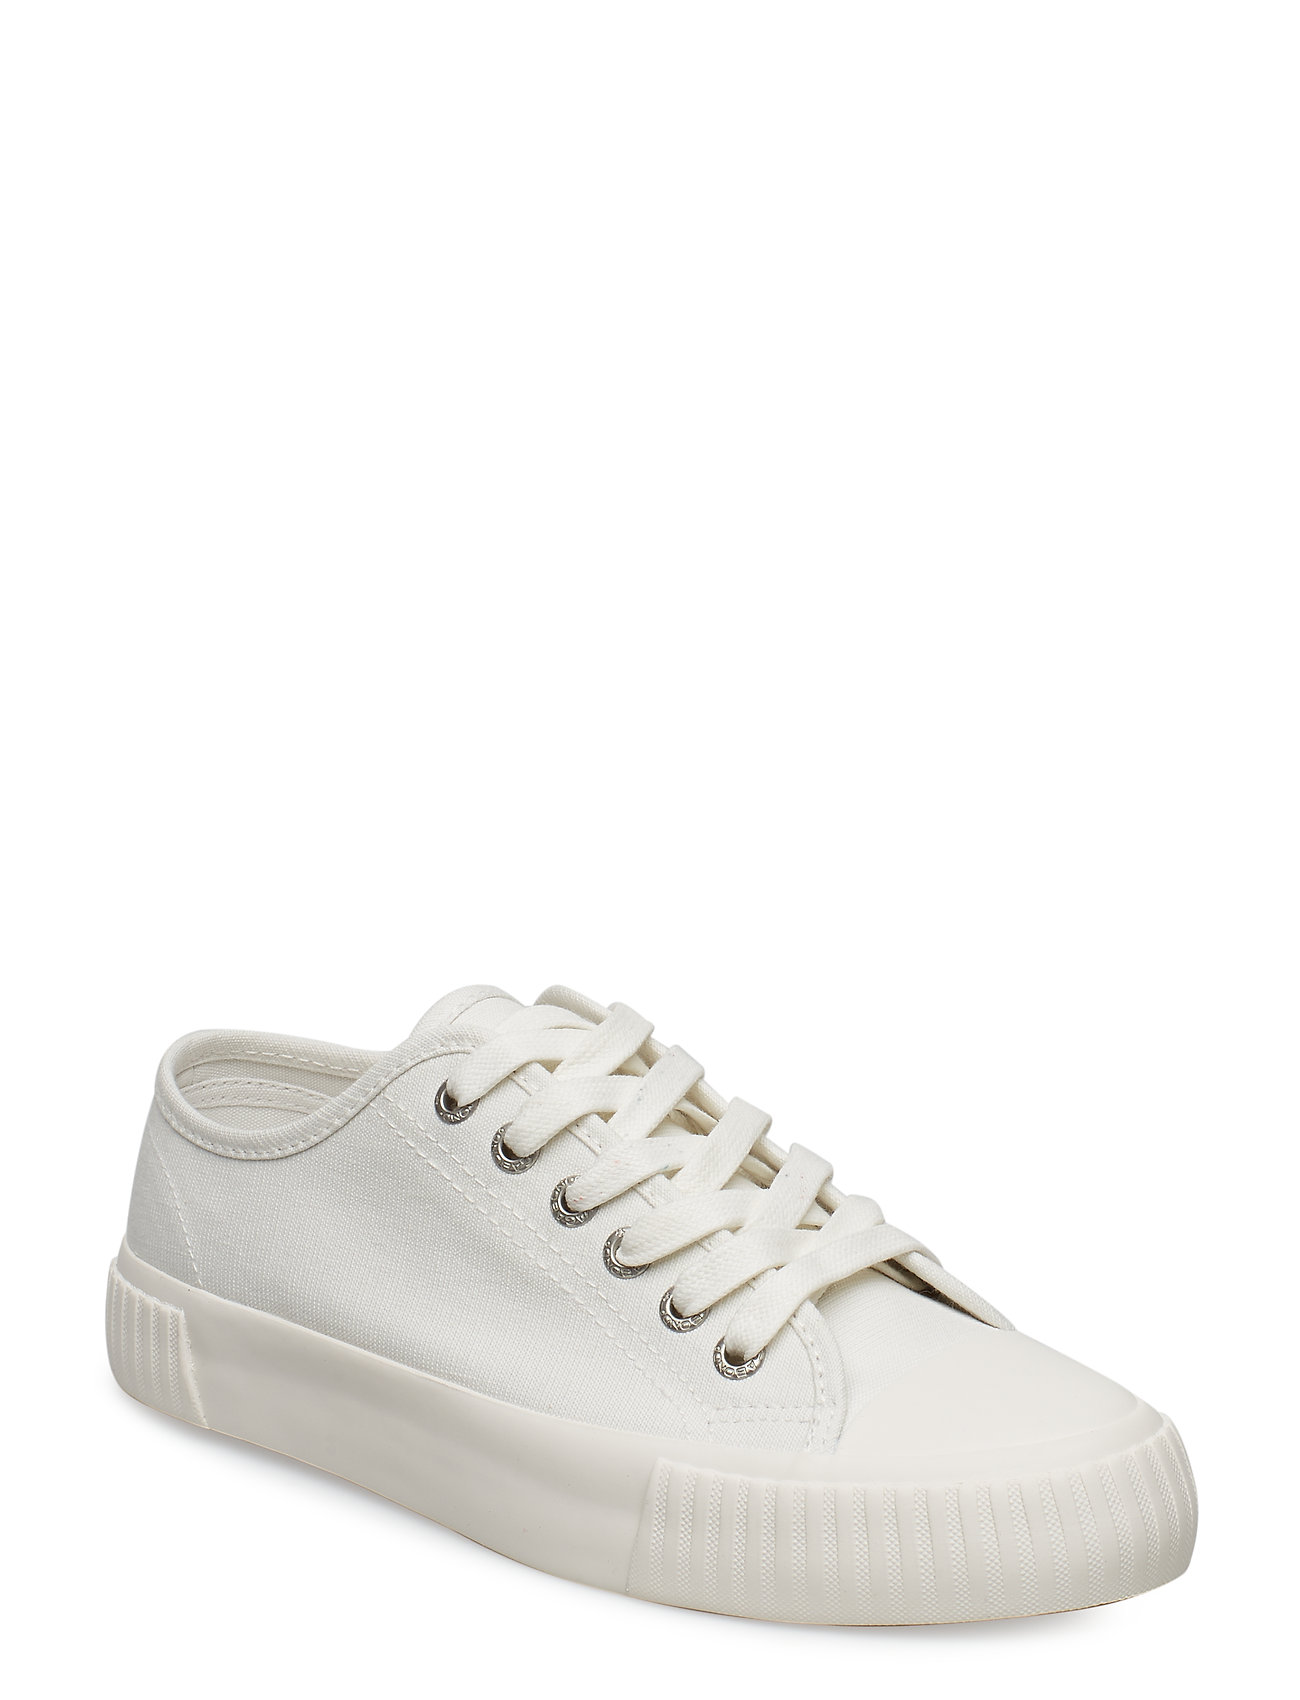 Ashley W Low top Sneakers Hvid VAGABOND